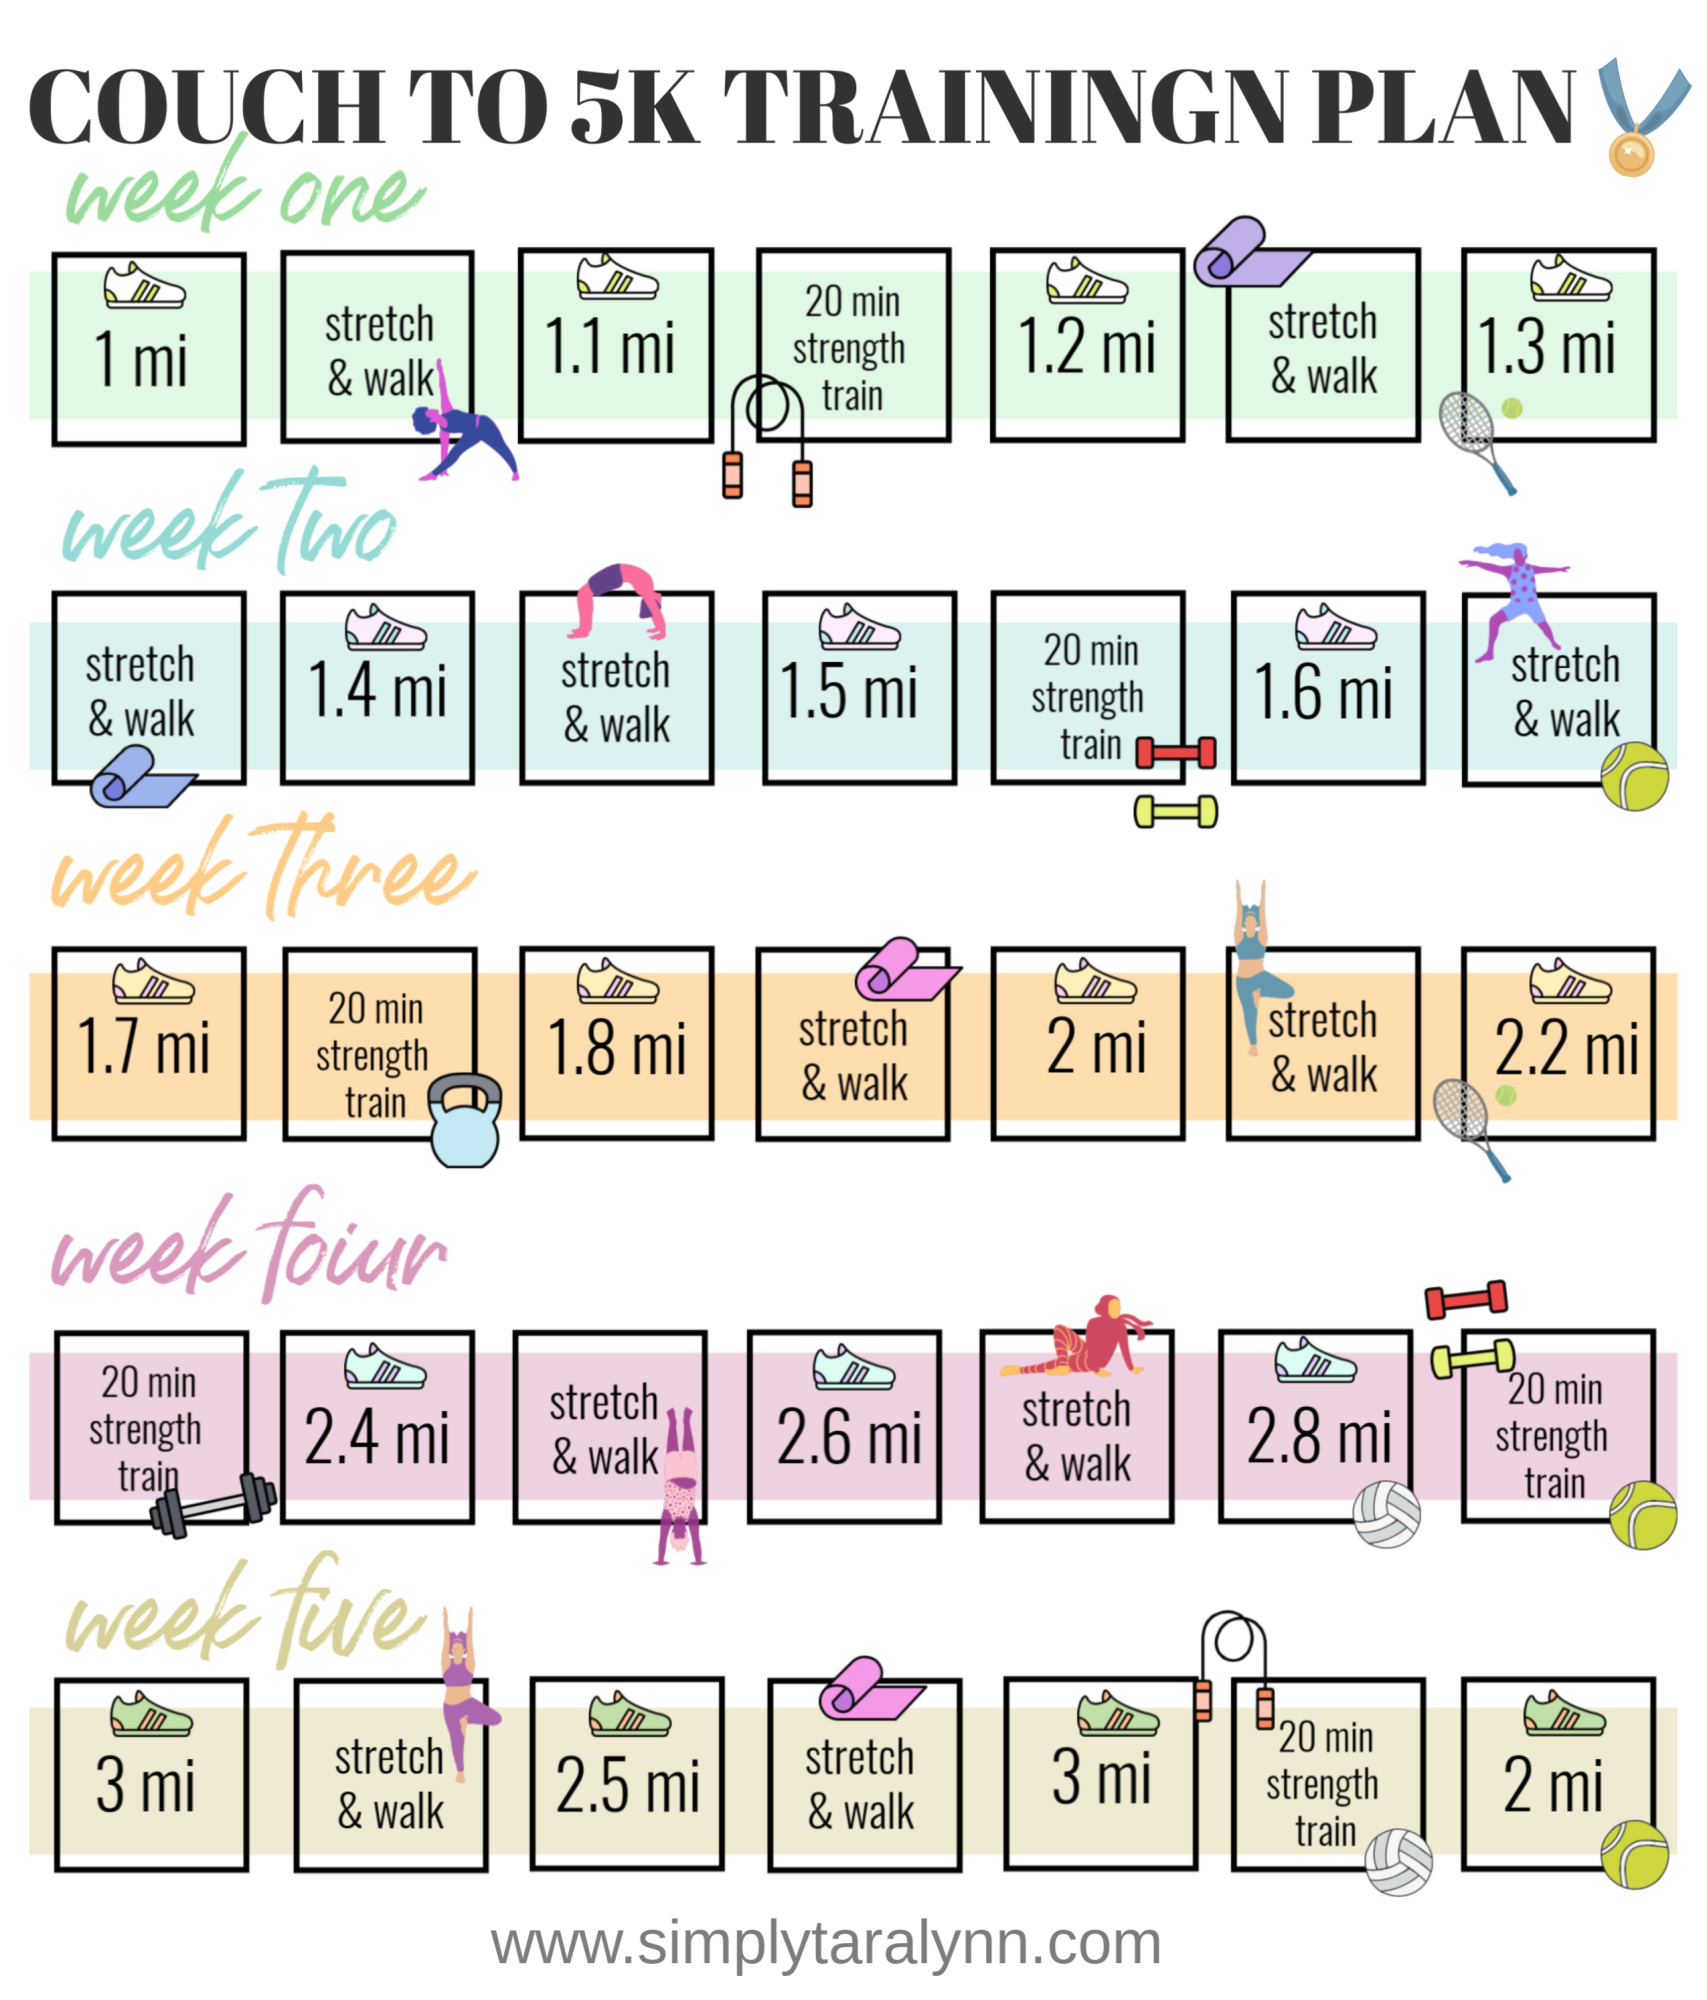 This is a picture of Légend Couch to 5k Plan Printable